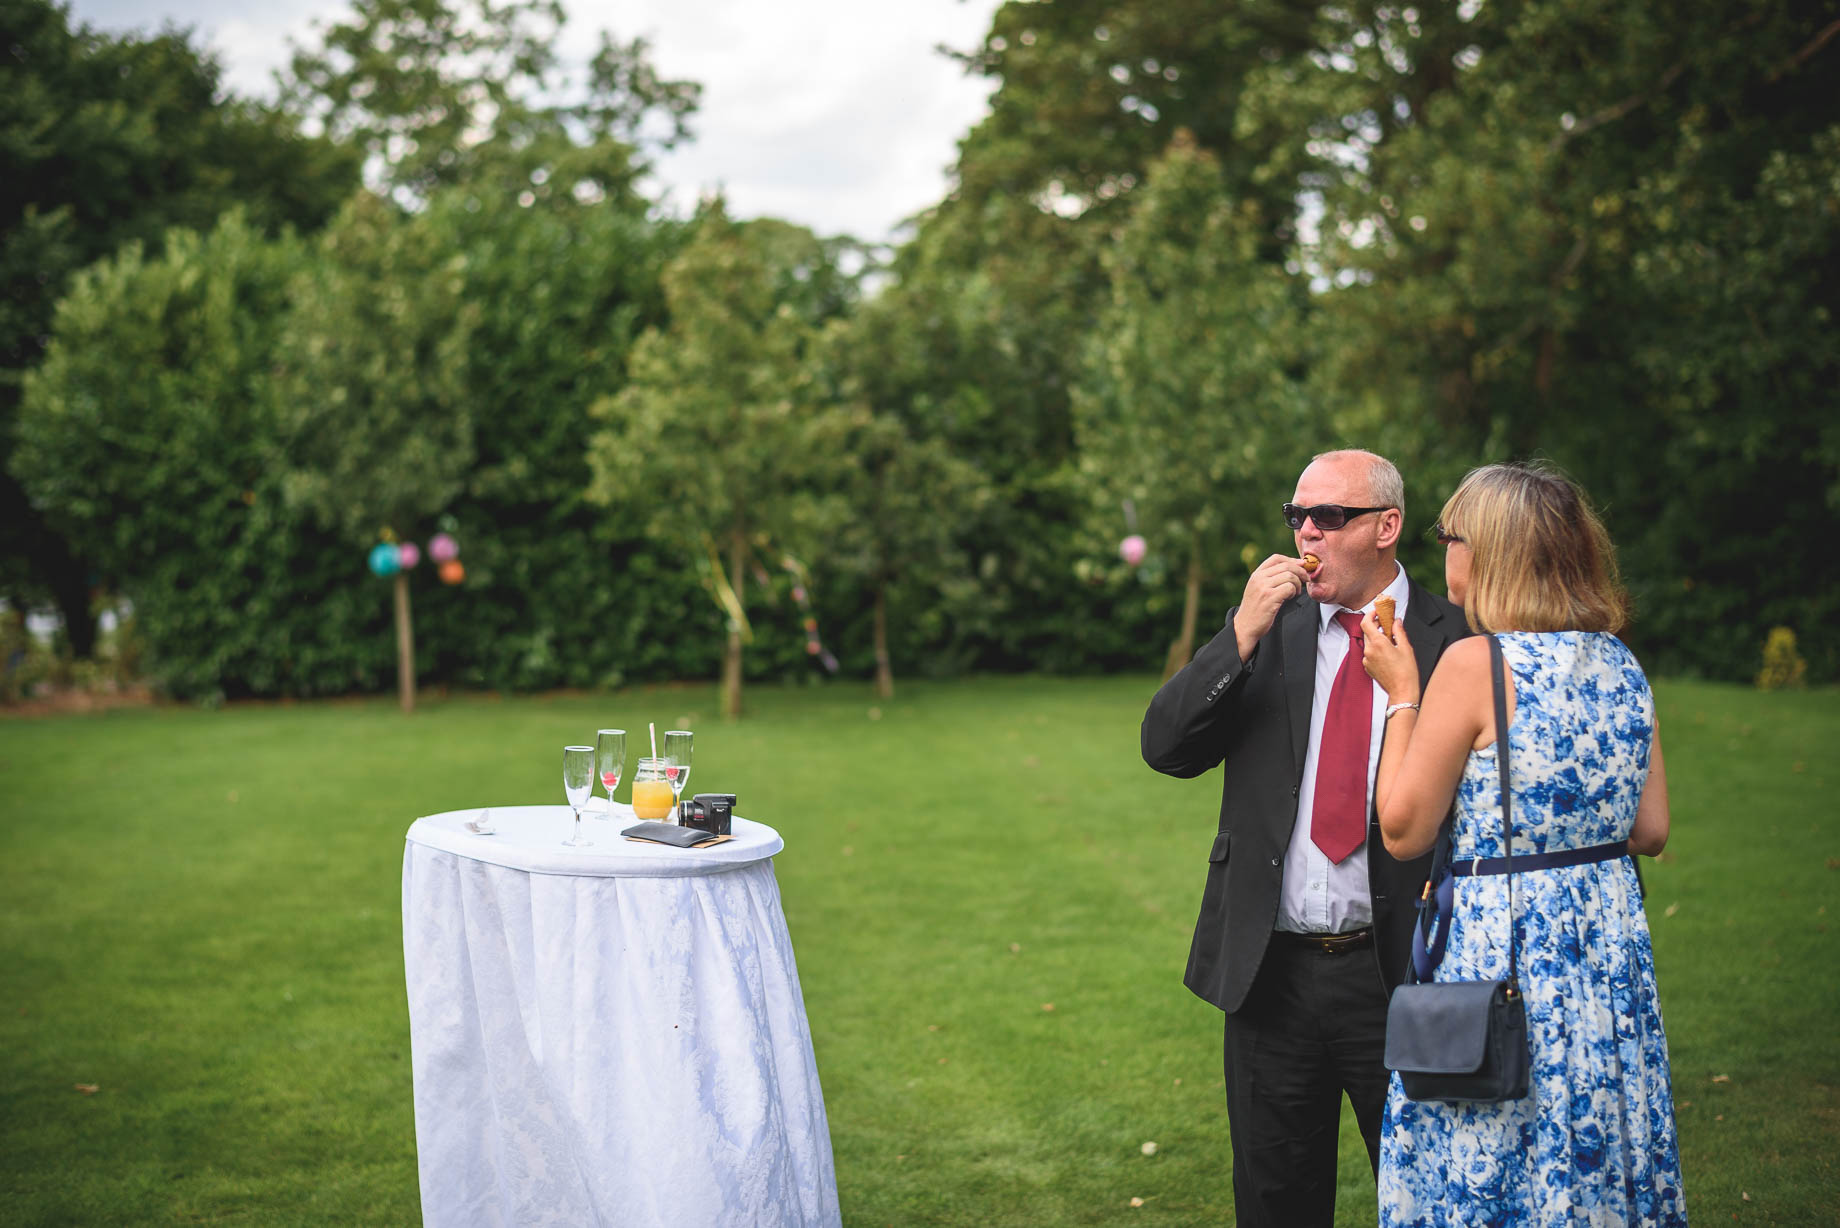 Luton Hoo wedding photography by Guy Collier Photography - Lauren and Gem (97 of 178)